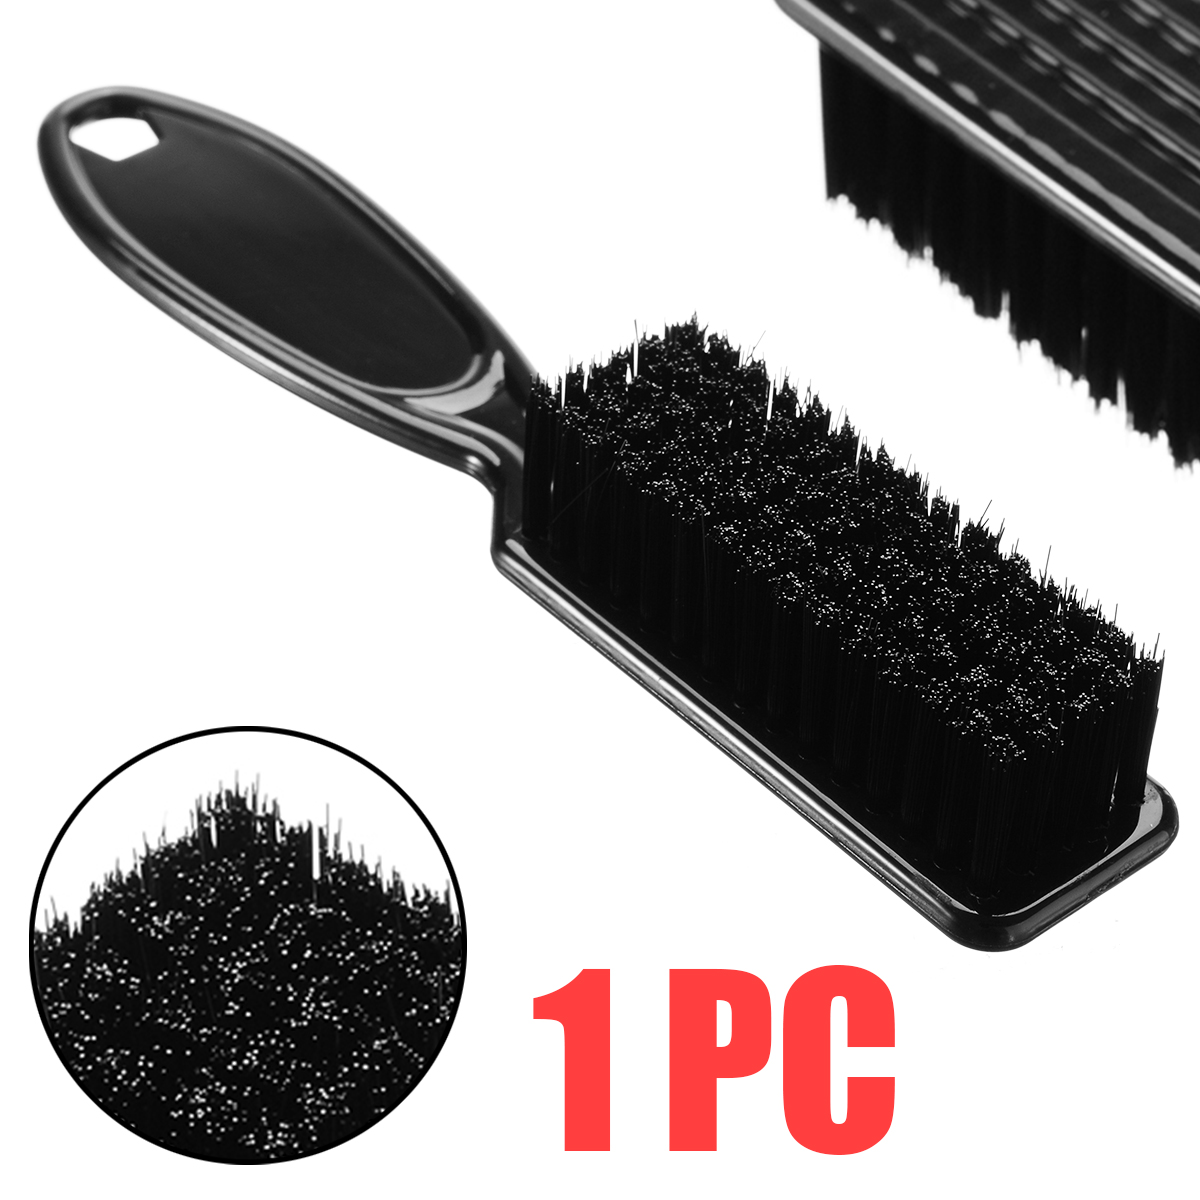 Professional Handy Tools Men Women Comb Scissors Cleaning Brush Salon Hair Sweep Barber Tool Hair Styling Accessories